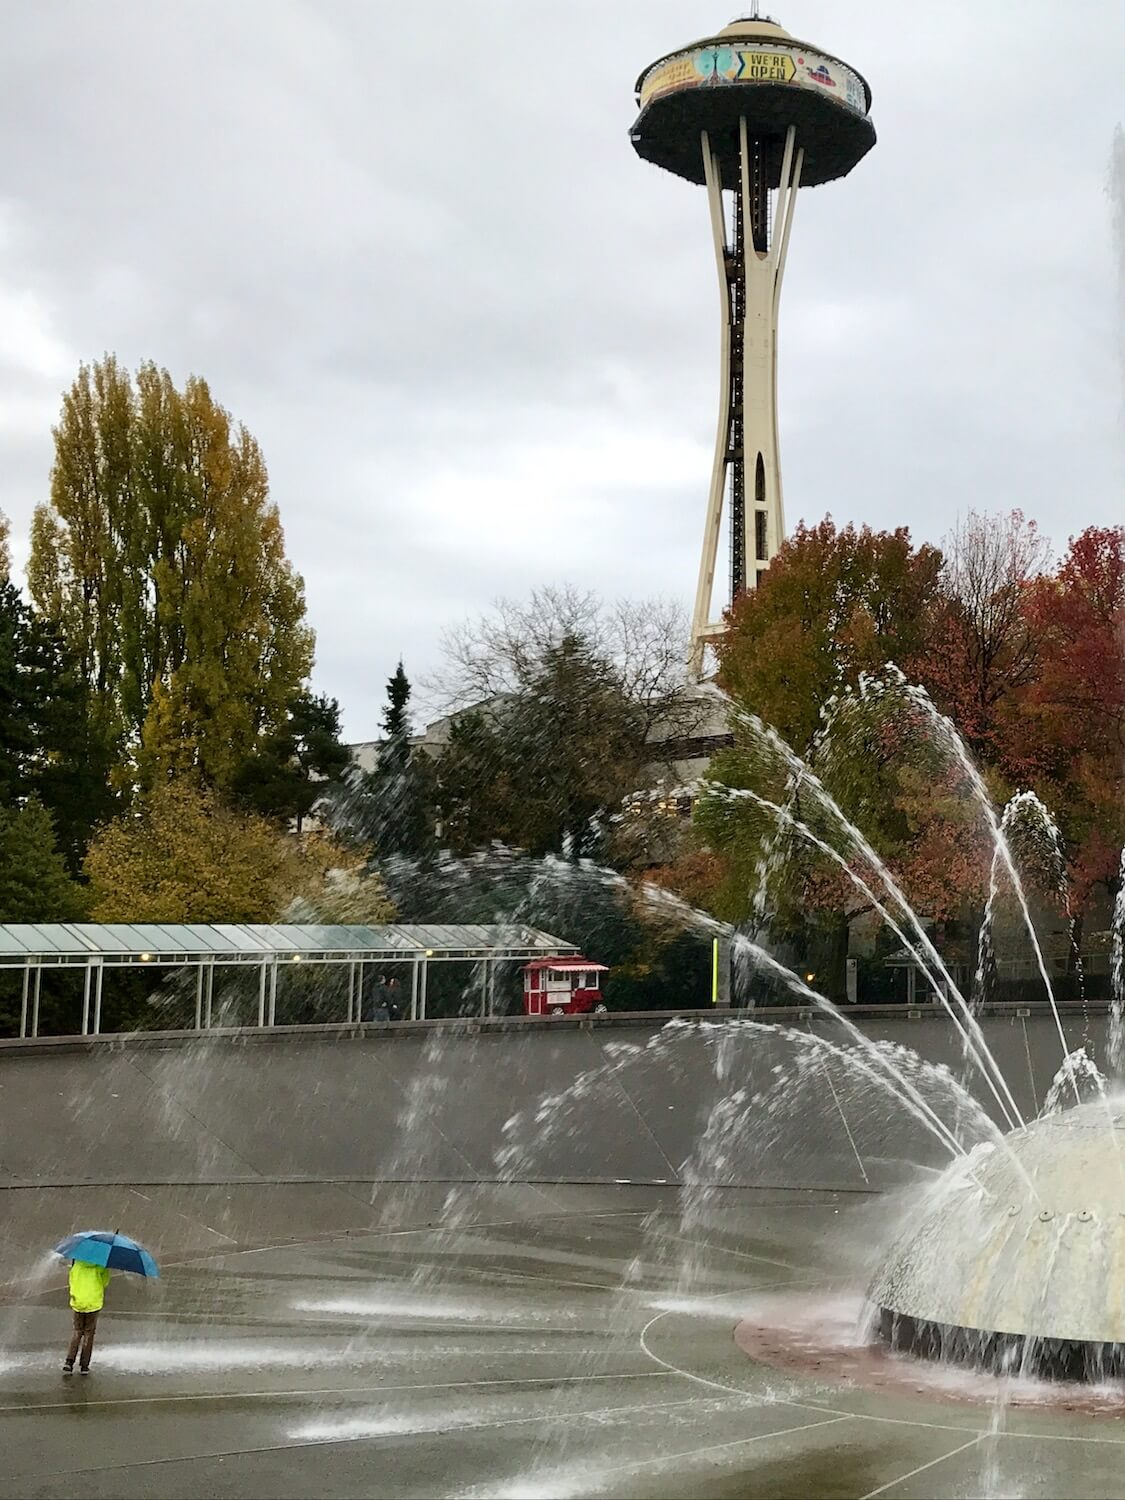 A boy wearing a yellow rain jacket approaches the large fountain with a blue umbrella. The metal piece of art shoots out powerful streams of water in all kinds of directions. In the background the Seattle Space Needle rises up above the park at Seattle Center.